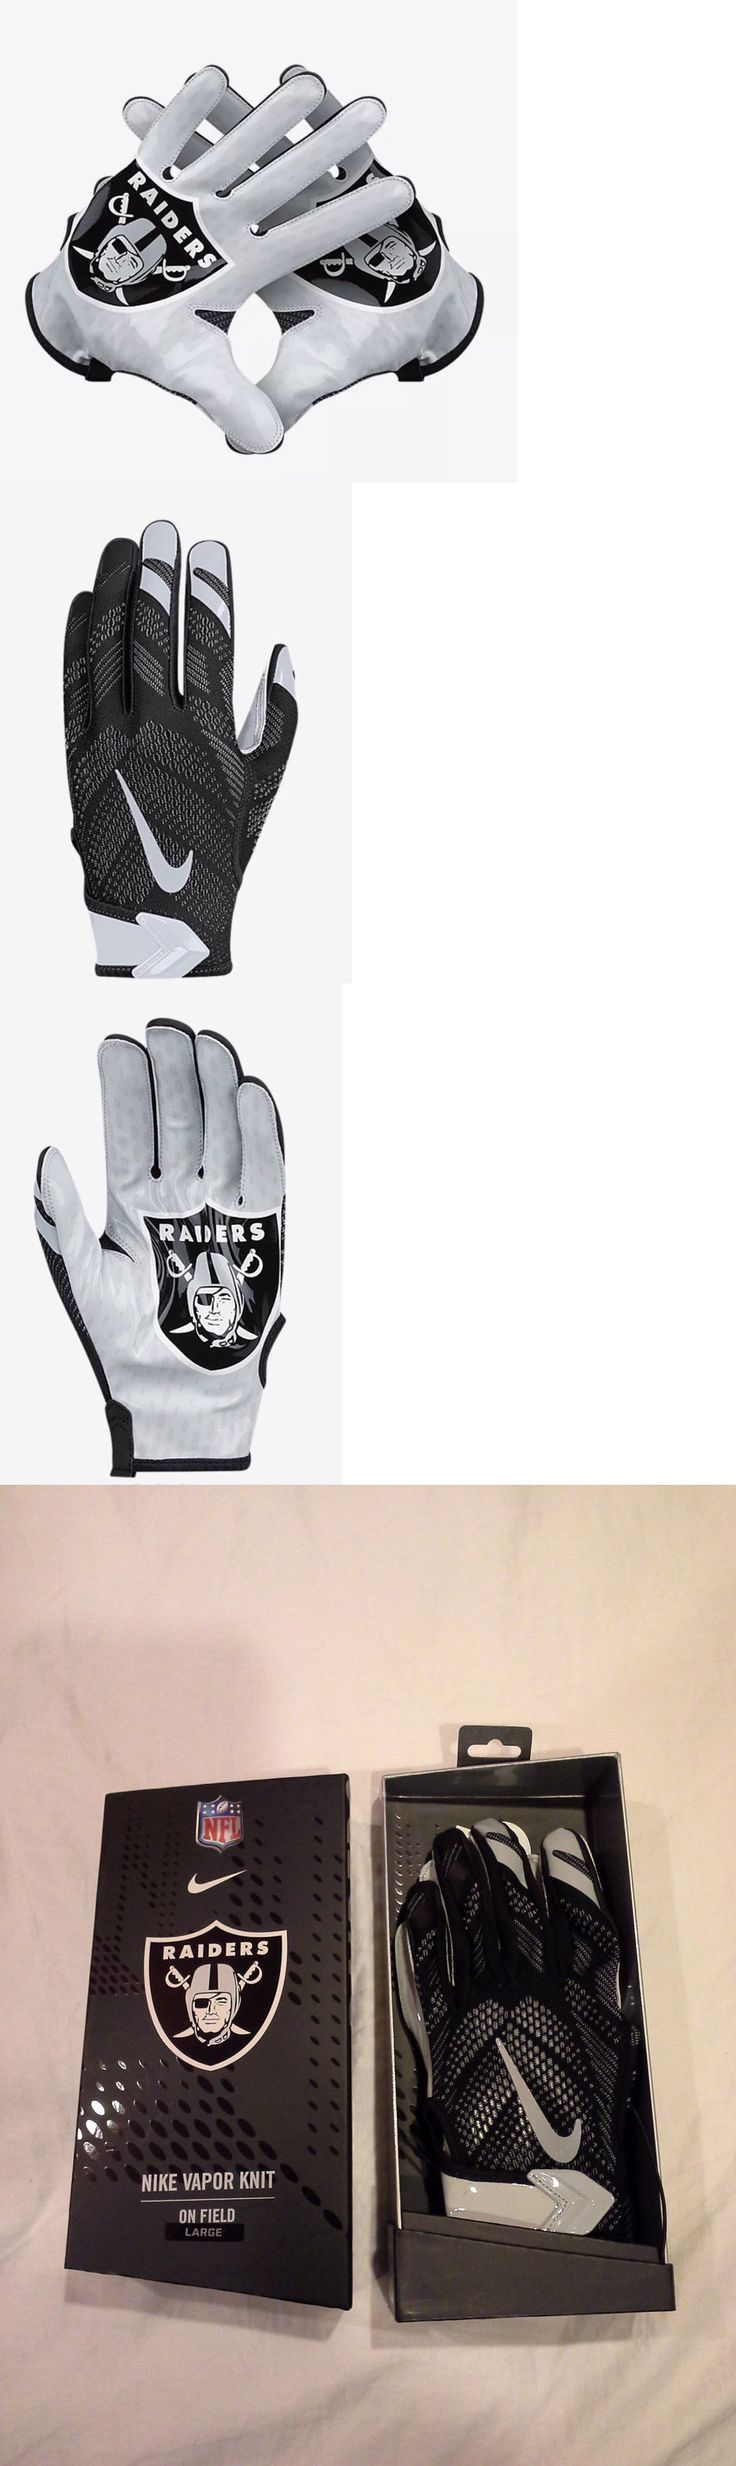 Gloves 159114: Nike Vapor Knit Nfl Oakland Raiders On Field Hyperfuse Skill Gloves Size M L Nwt -> BUY IT NOW ONLY: $69.99 on eBay!